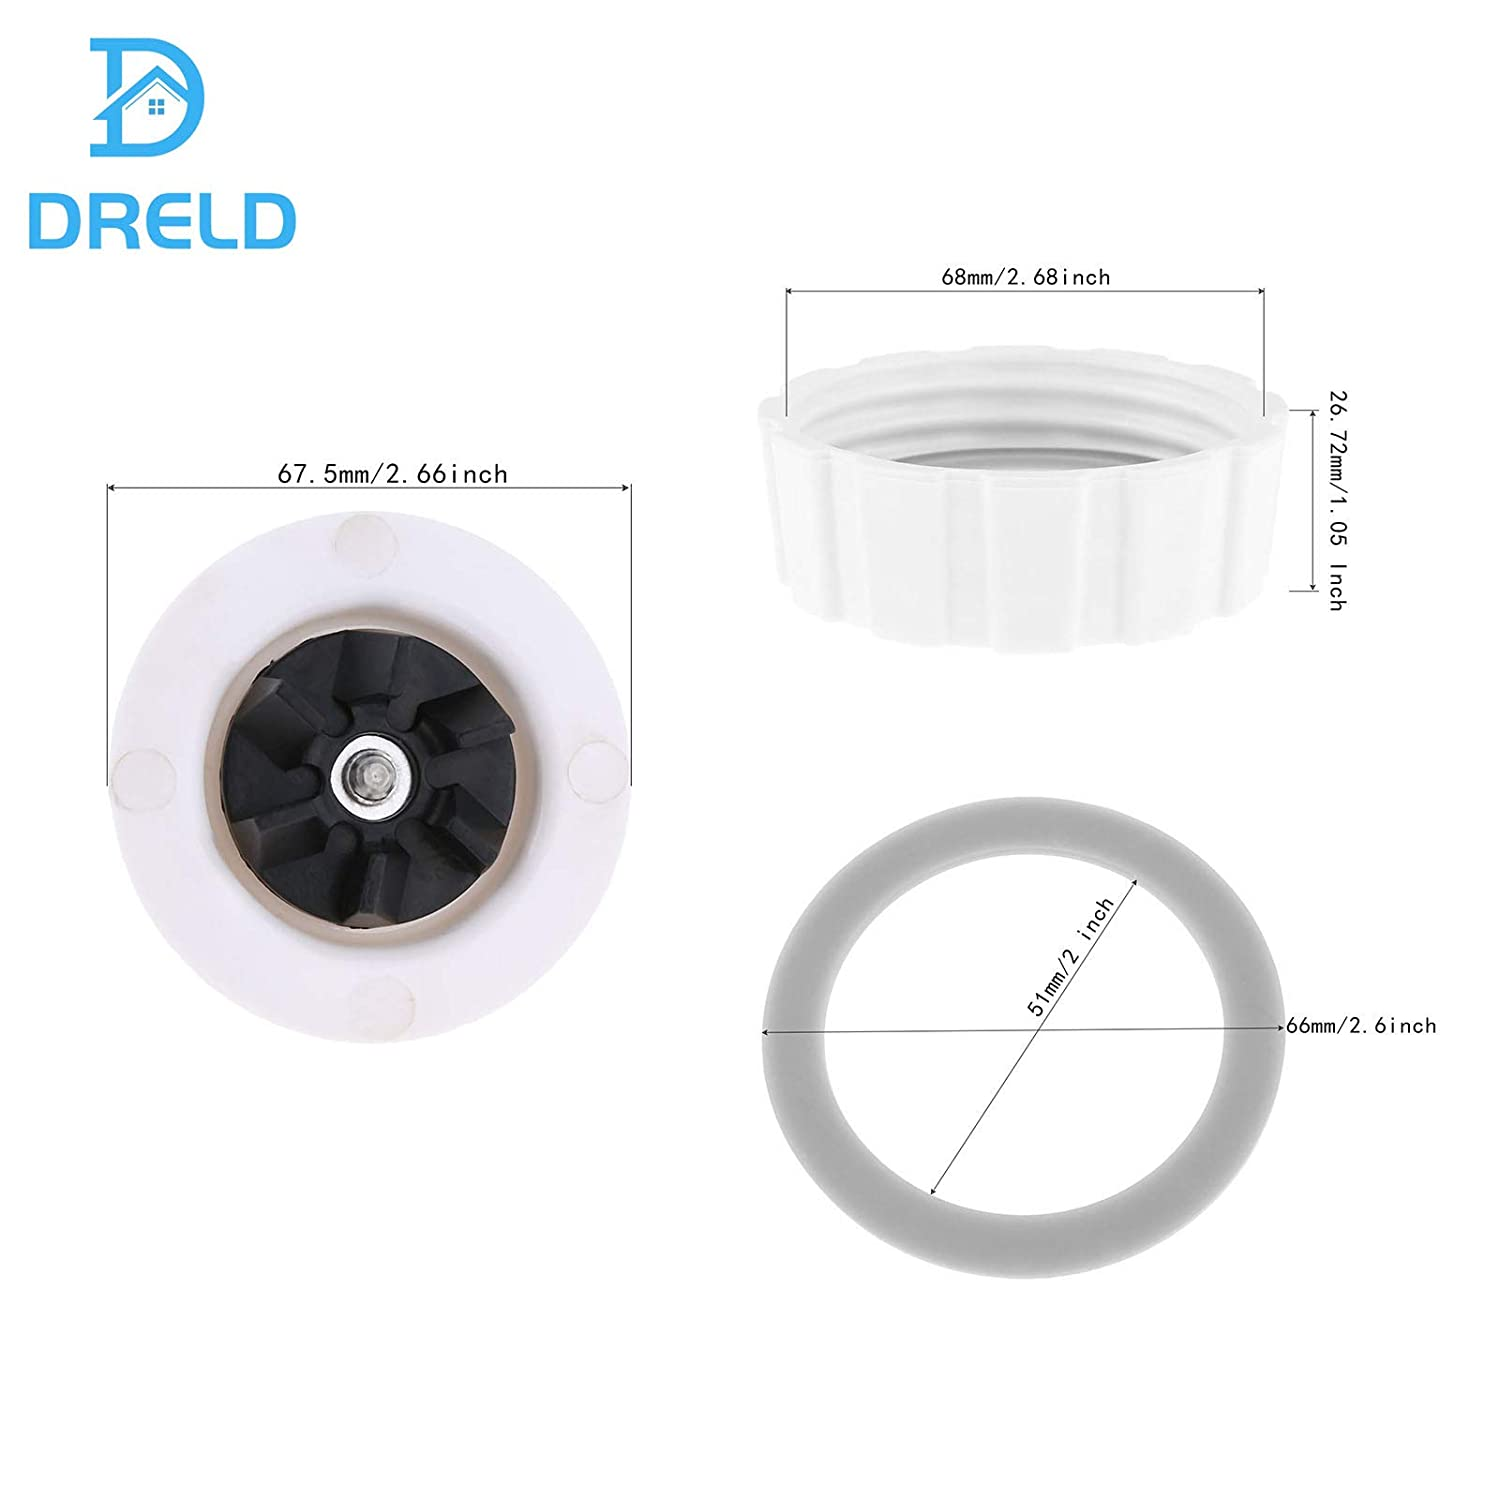 Dreld Blade with Gasket Blender Base Bottom Cap and 2 Rubber O Ring Sealing Gaskets Replacement Part Fit for Hamilton Beach Blenders